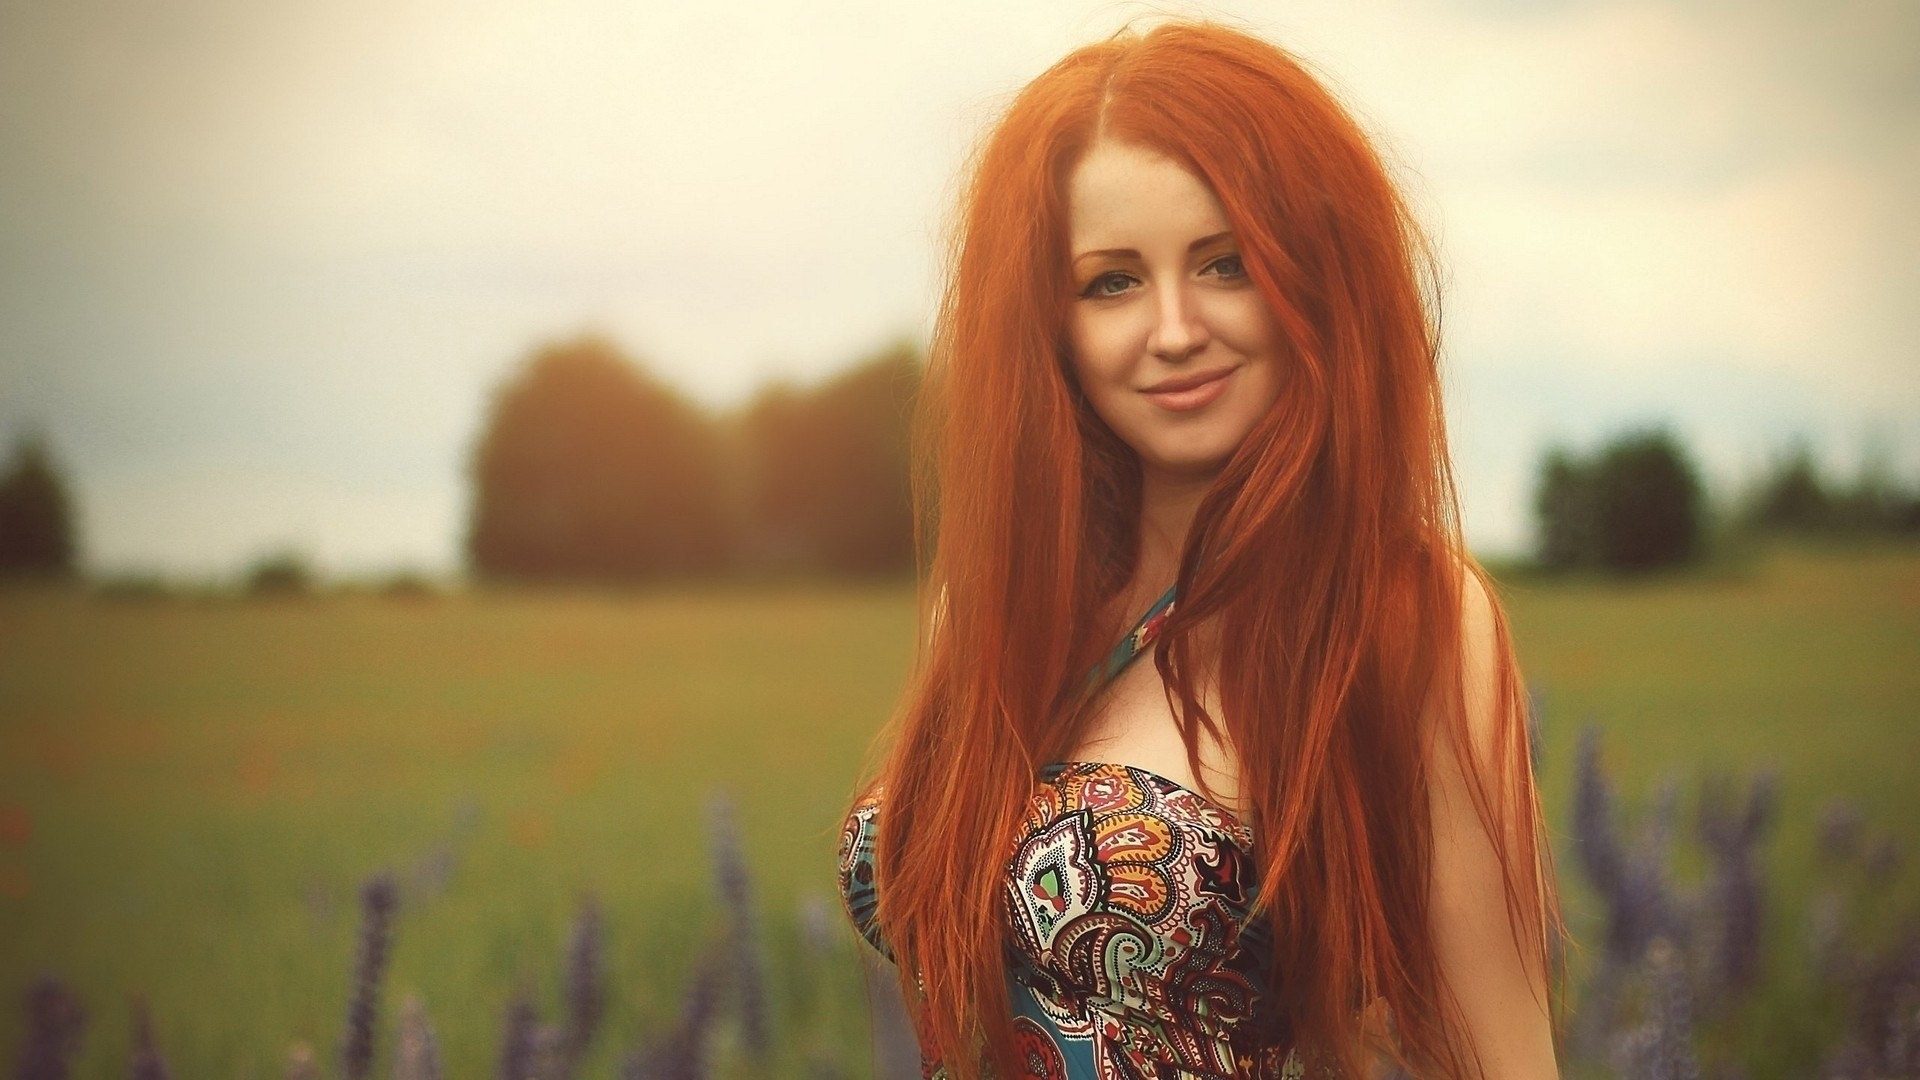 Download Redhead, Girl, Smile 950x1534 Resolution, Full HD